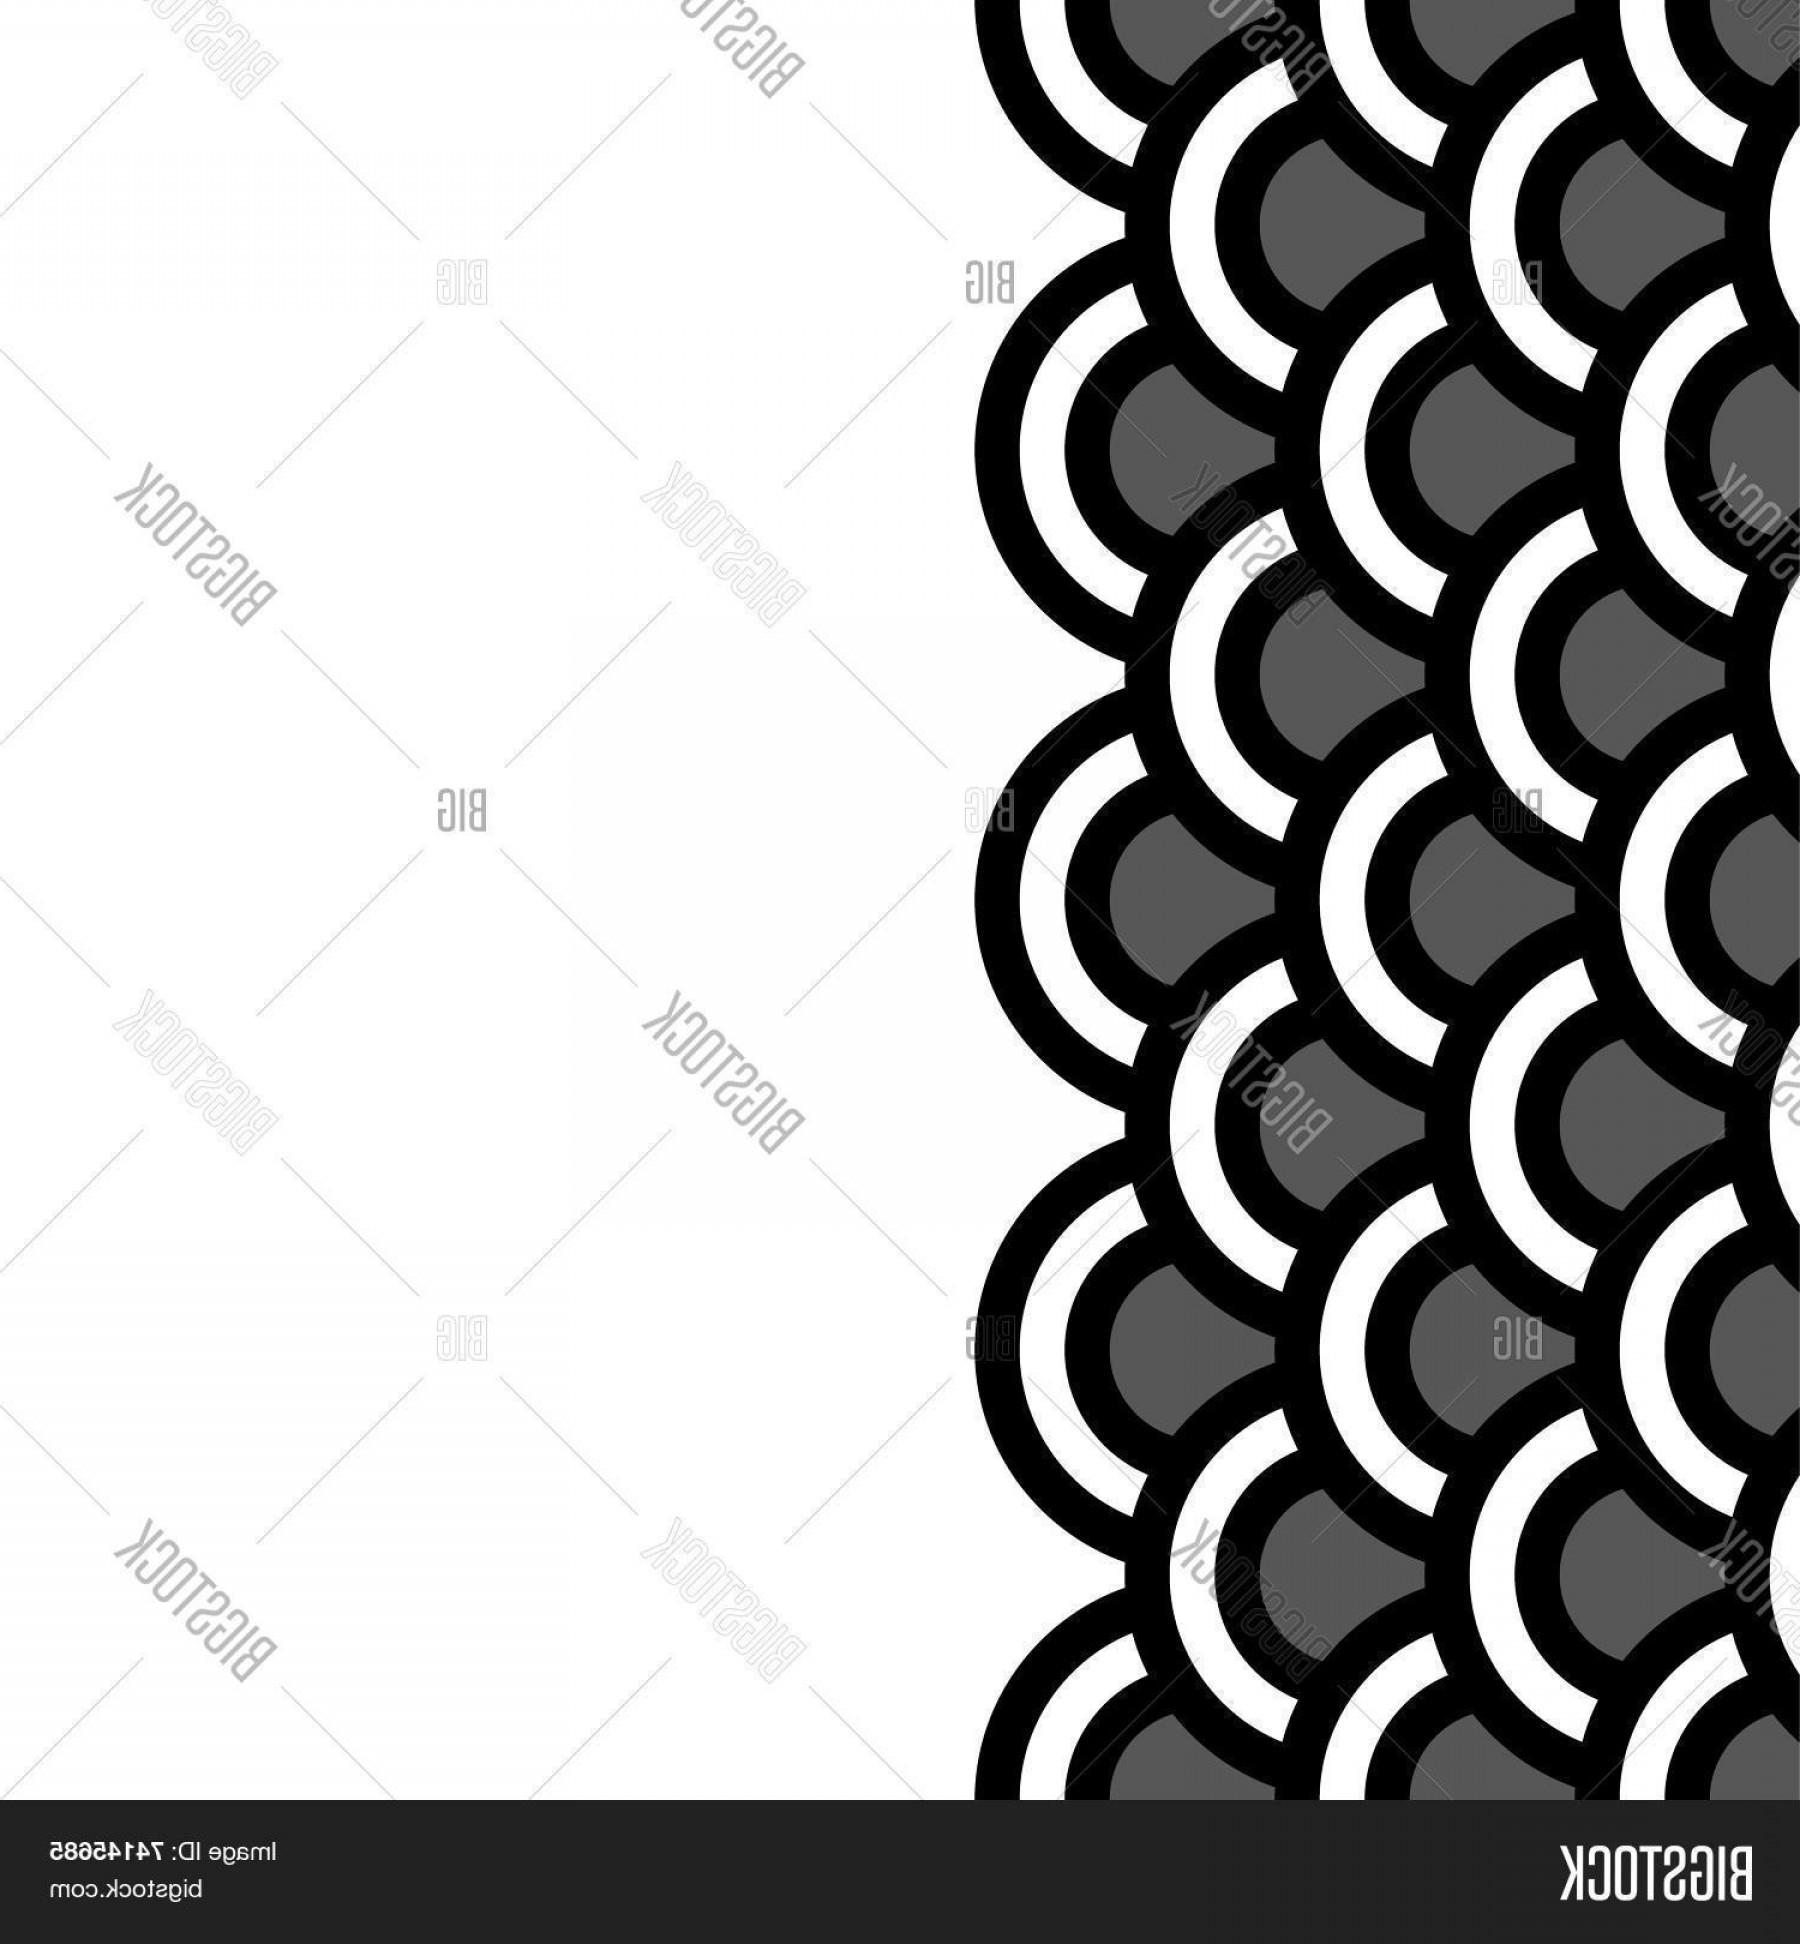 Black Scalloped Border Vector: Stock Vector Geometric Scallop Seamless Border Pattern In Black And Whitec Vector